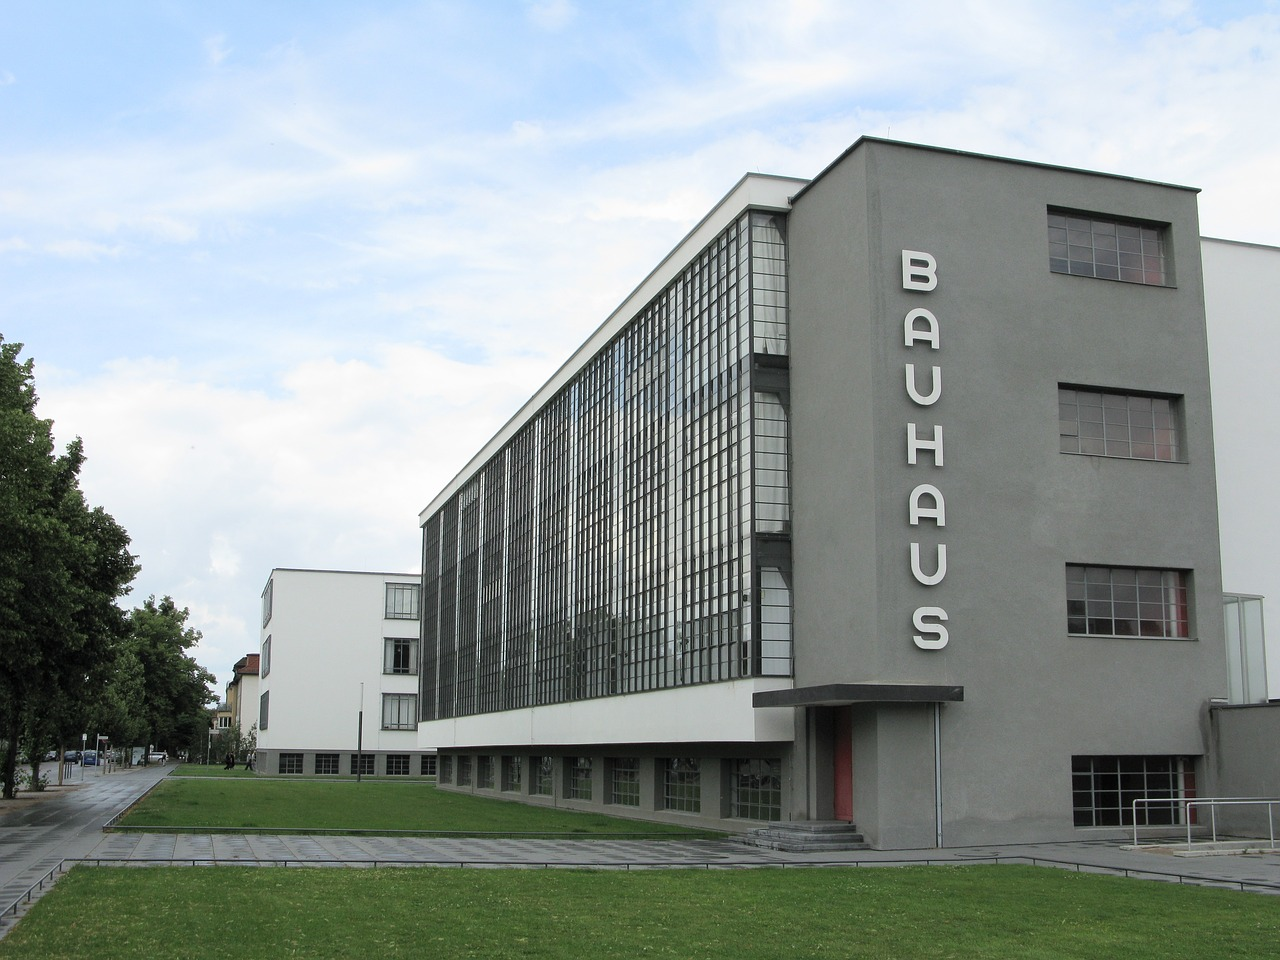 This is in Austria. Both Bauhaus and Schoenberg date from the period around the turn of the 20th century.